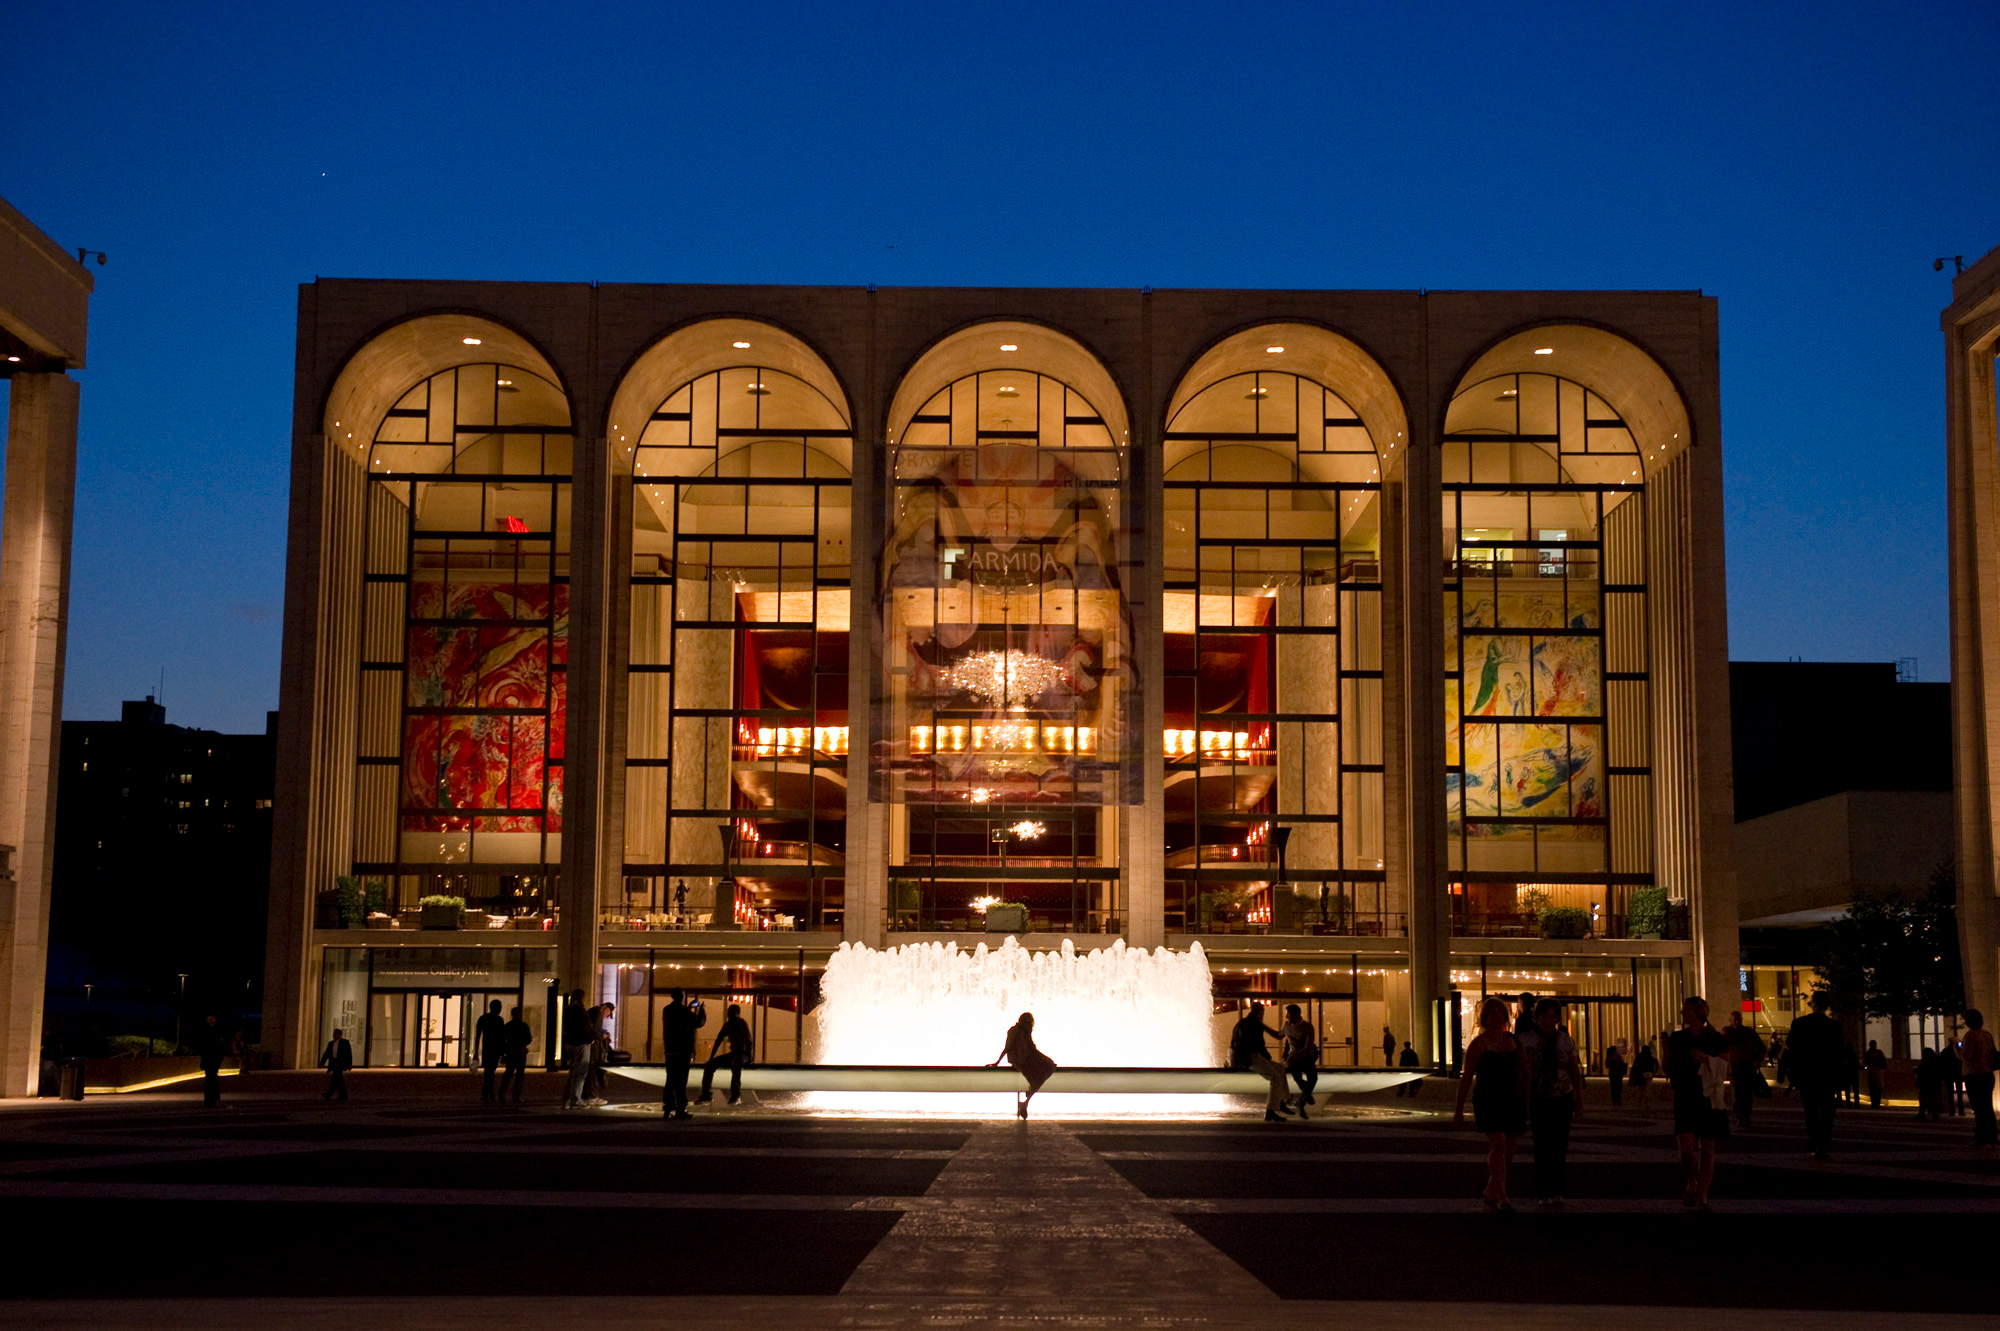 Metropolitan Opera to Offer Up 'Nightly Met Opera Streams' - Opera ...